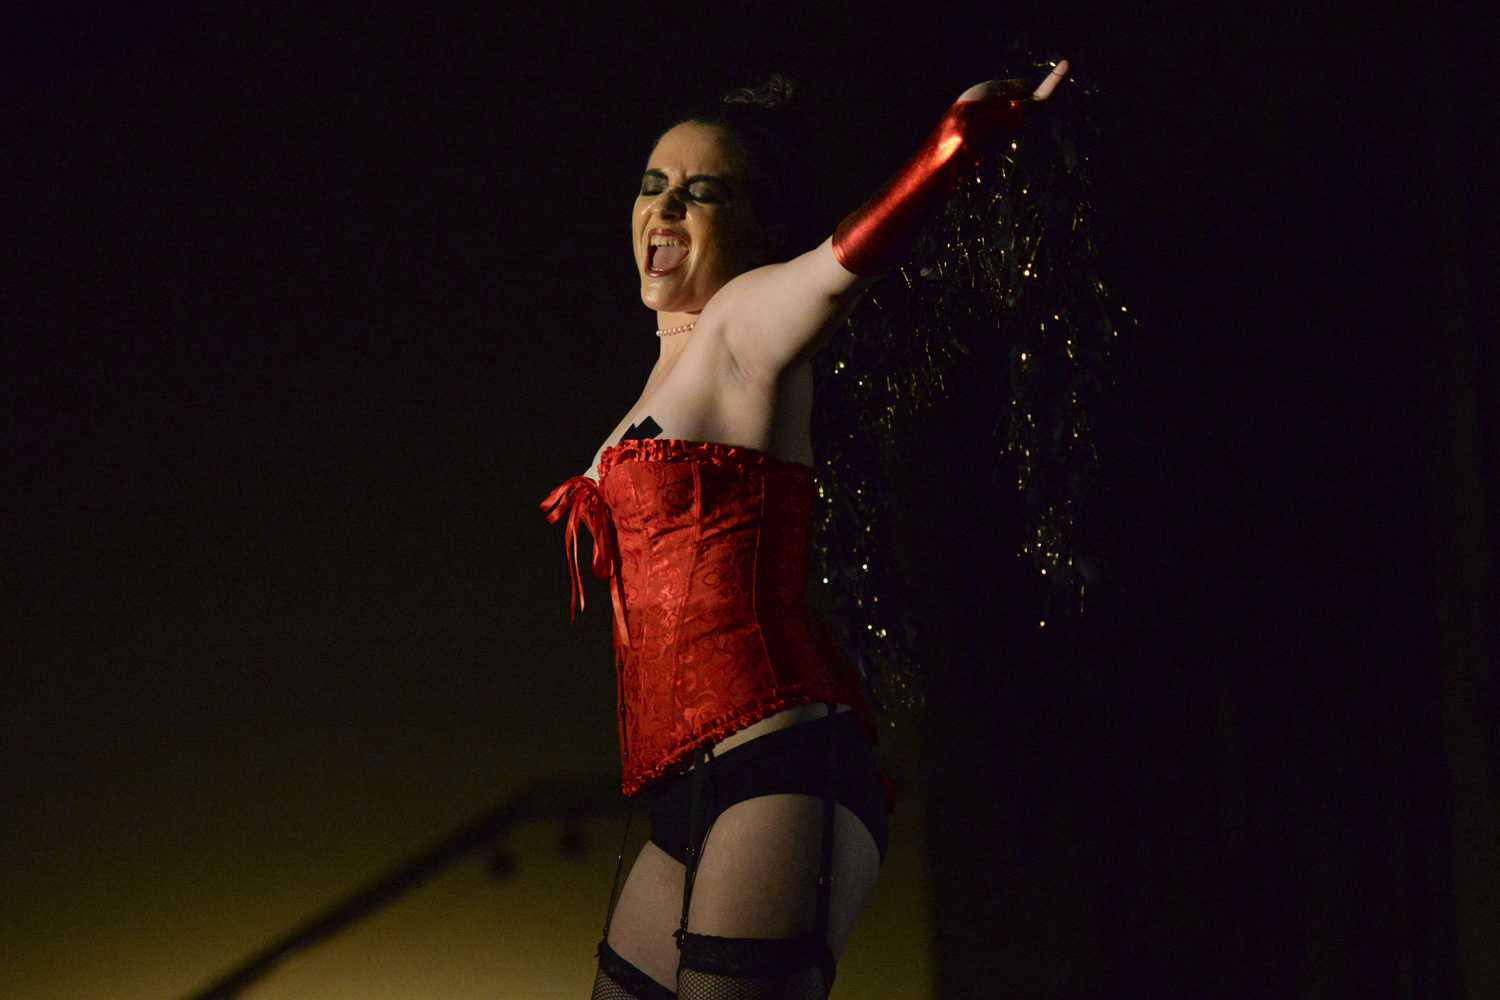 Then-senior Delena Obermaier played the role of Dr. Frank-N-Furter at Pitt's production of